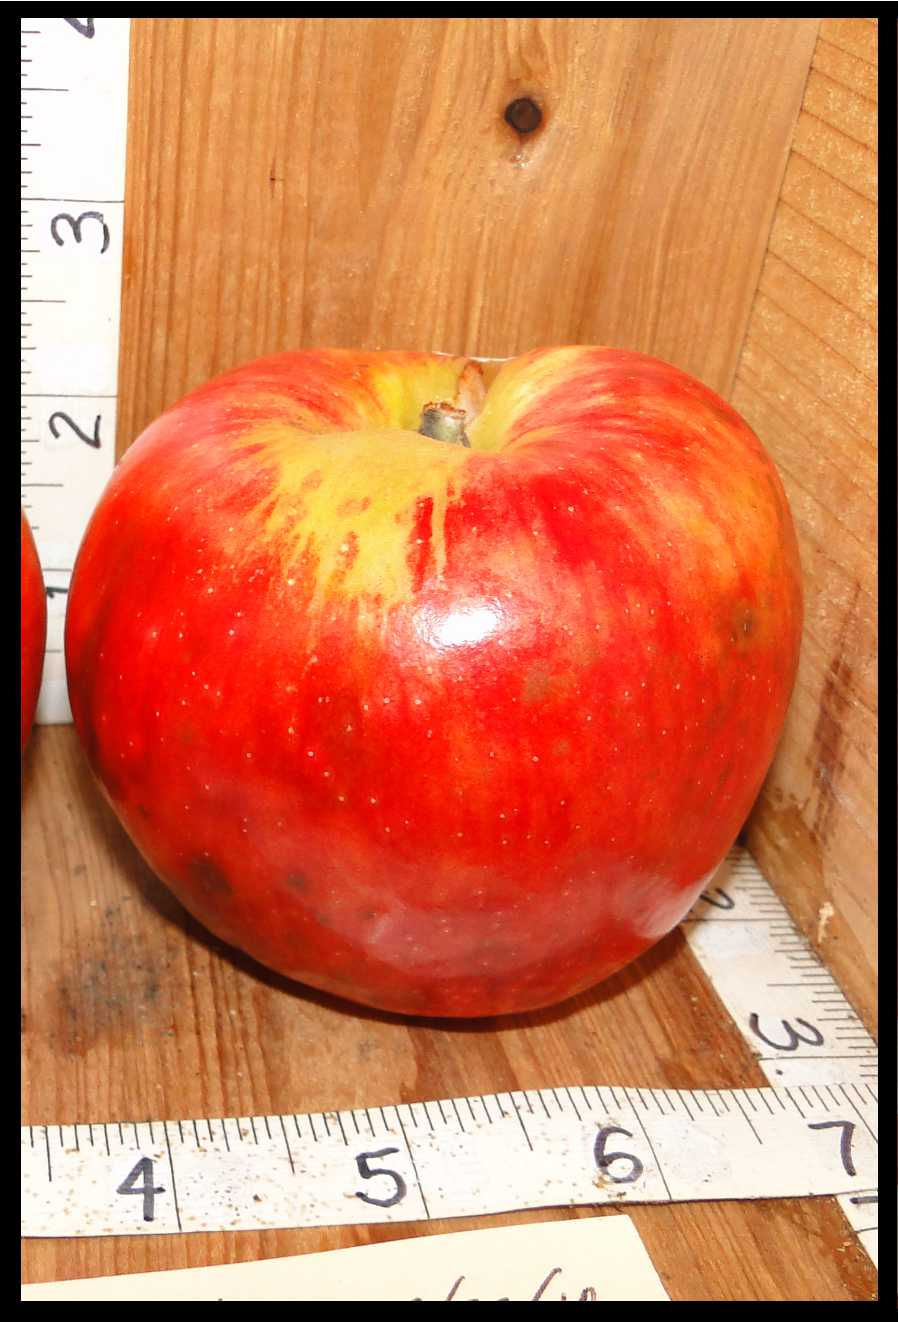 red apple with yellow around the stem and streaking down the sides of the fruit